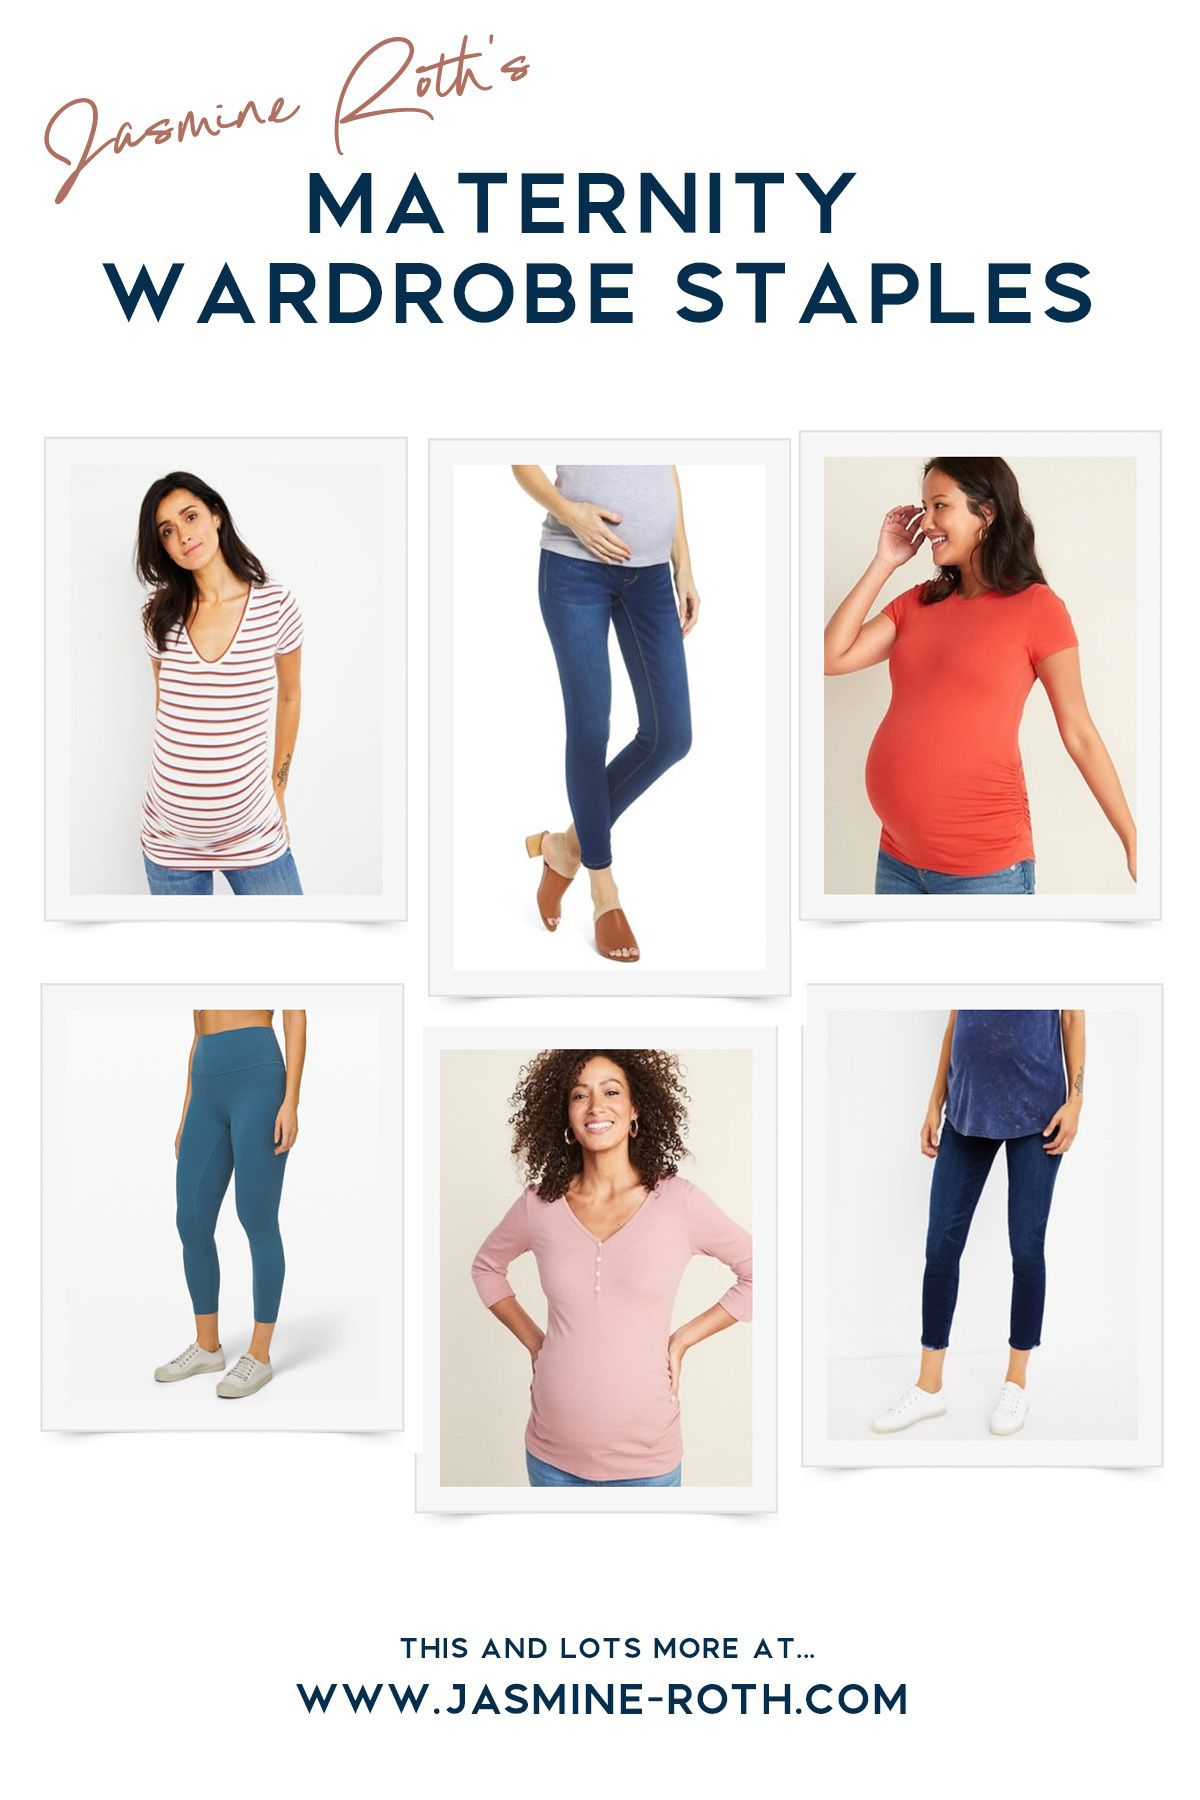 Maternity Clothes Everything You Need To Know About Dressing The Bump Part 1 The Blog By Jasmine Roth Comfortable Maternity Clothes Maternity Work Clothes Buying Maternity Clothes